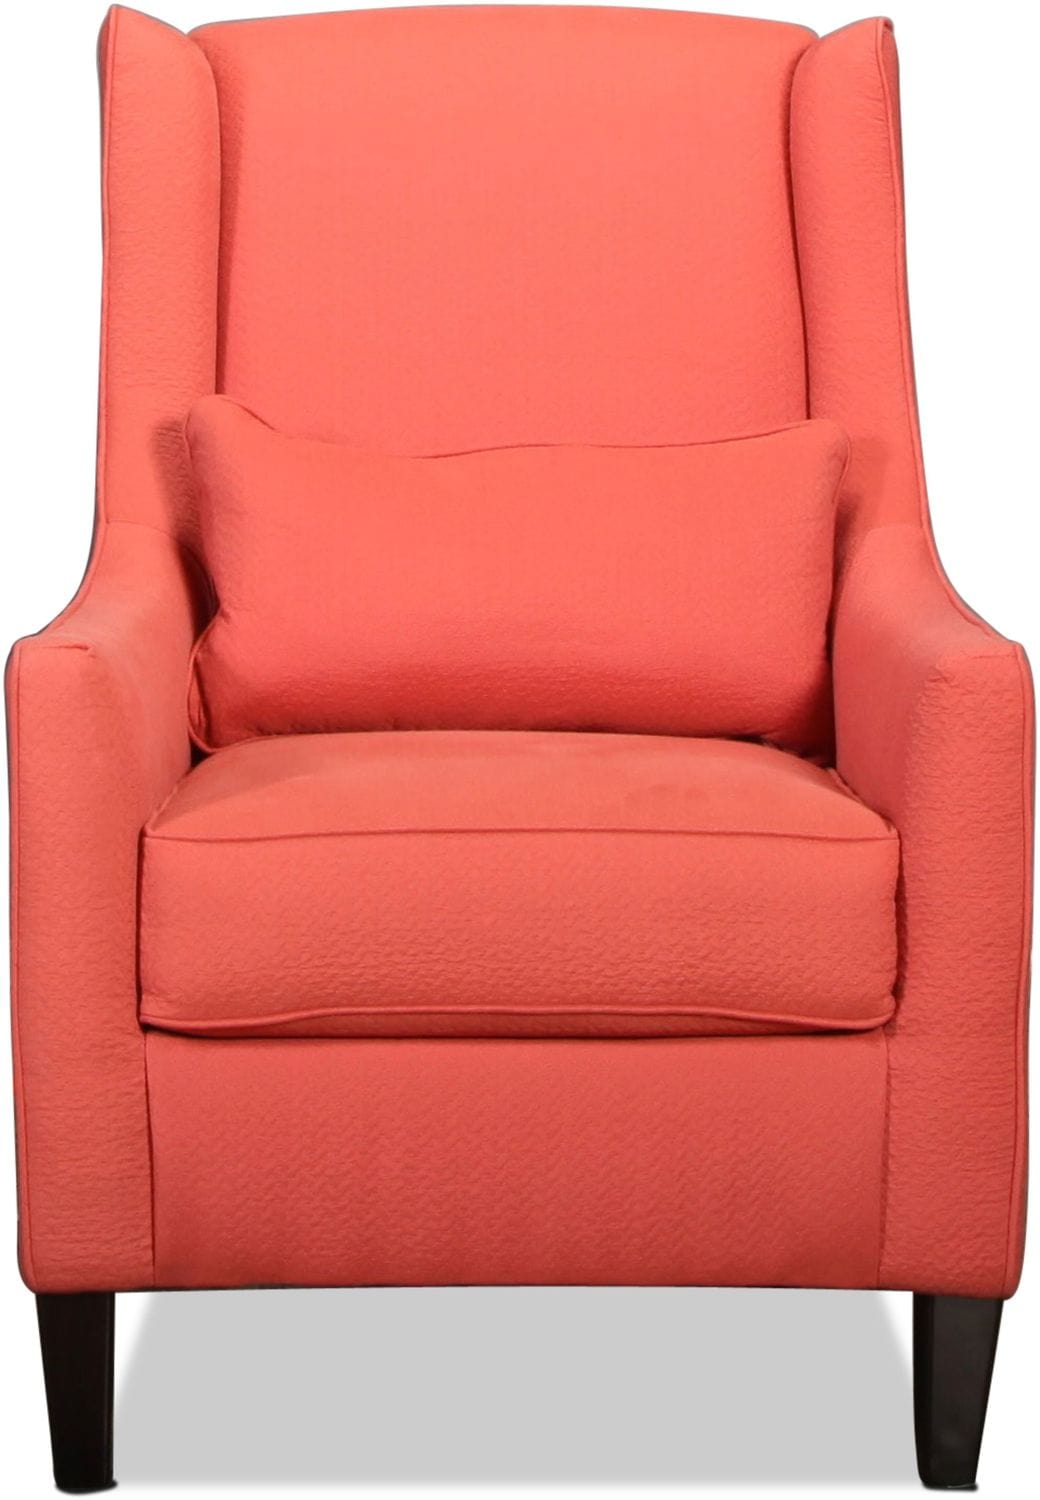 Peoria Accent Chair - Coral